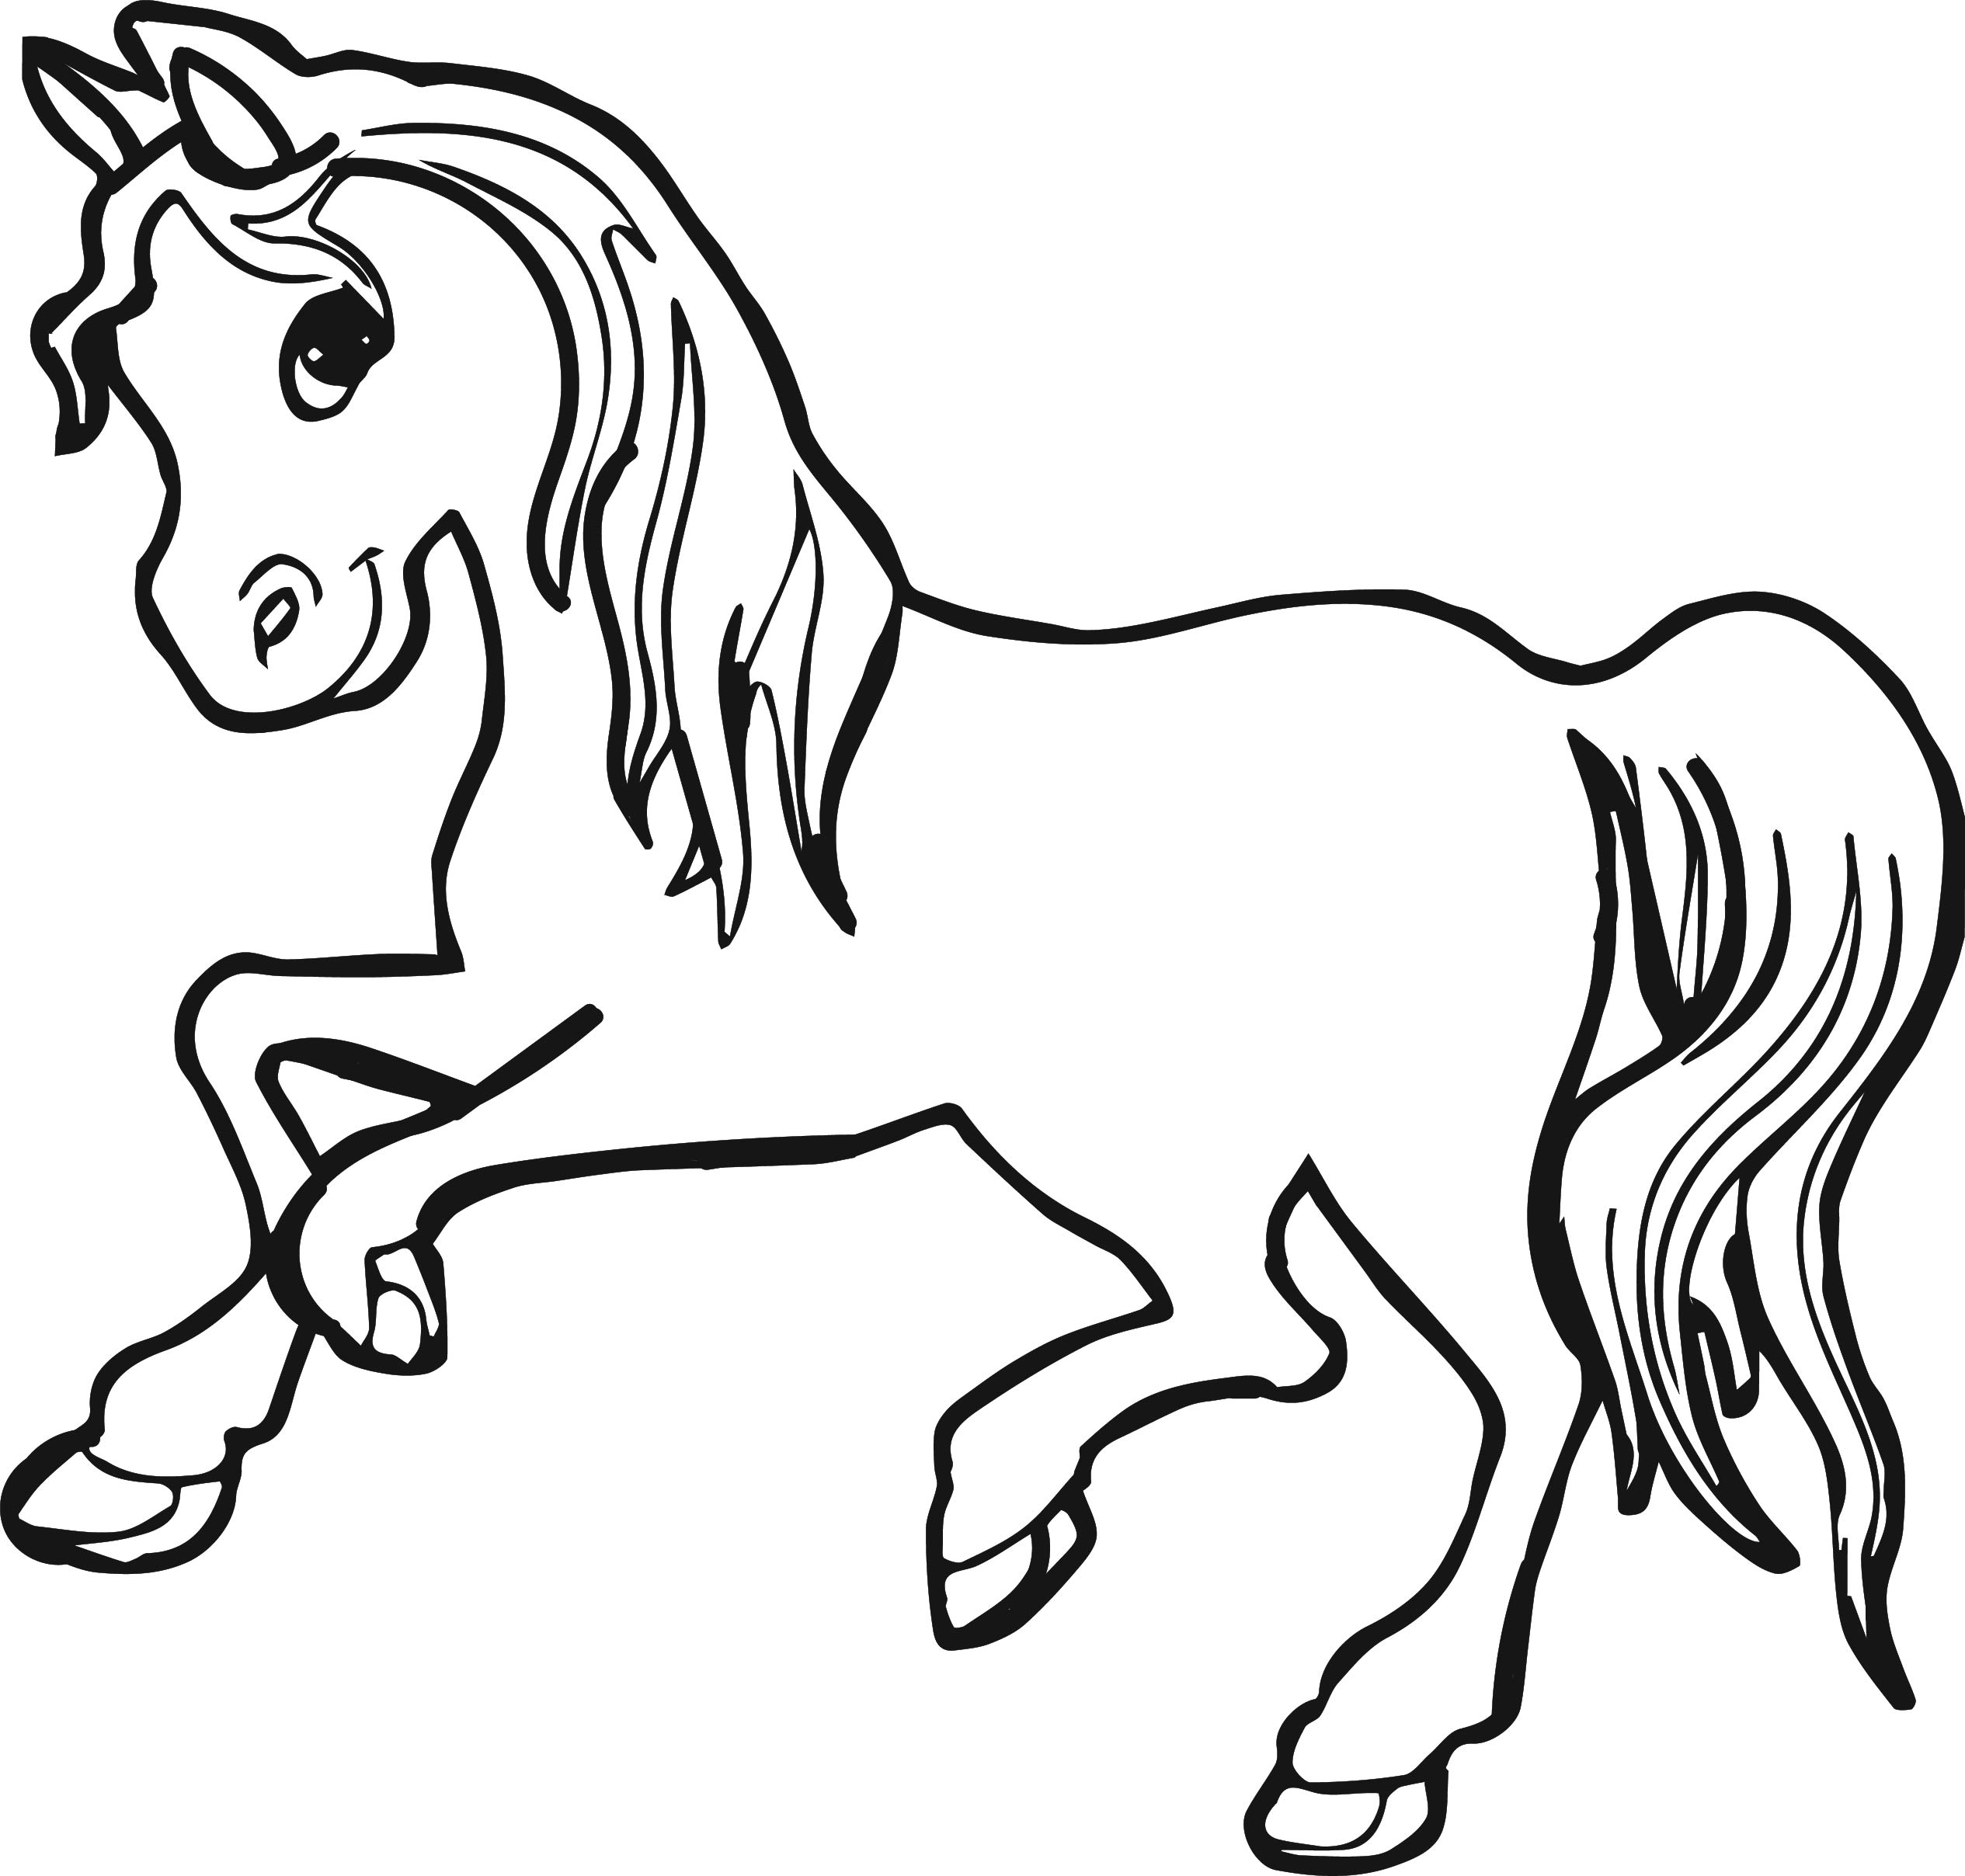 coloring sheet horse free horse coloring pages coloring horse sheet